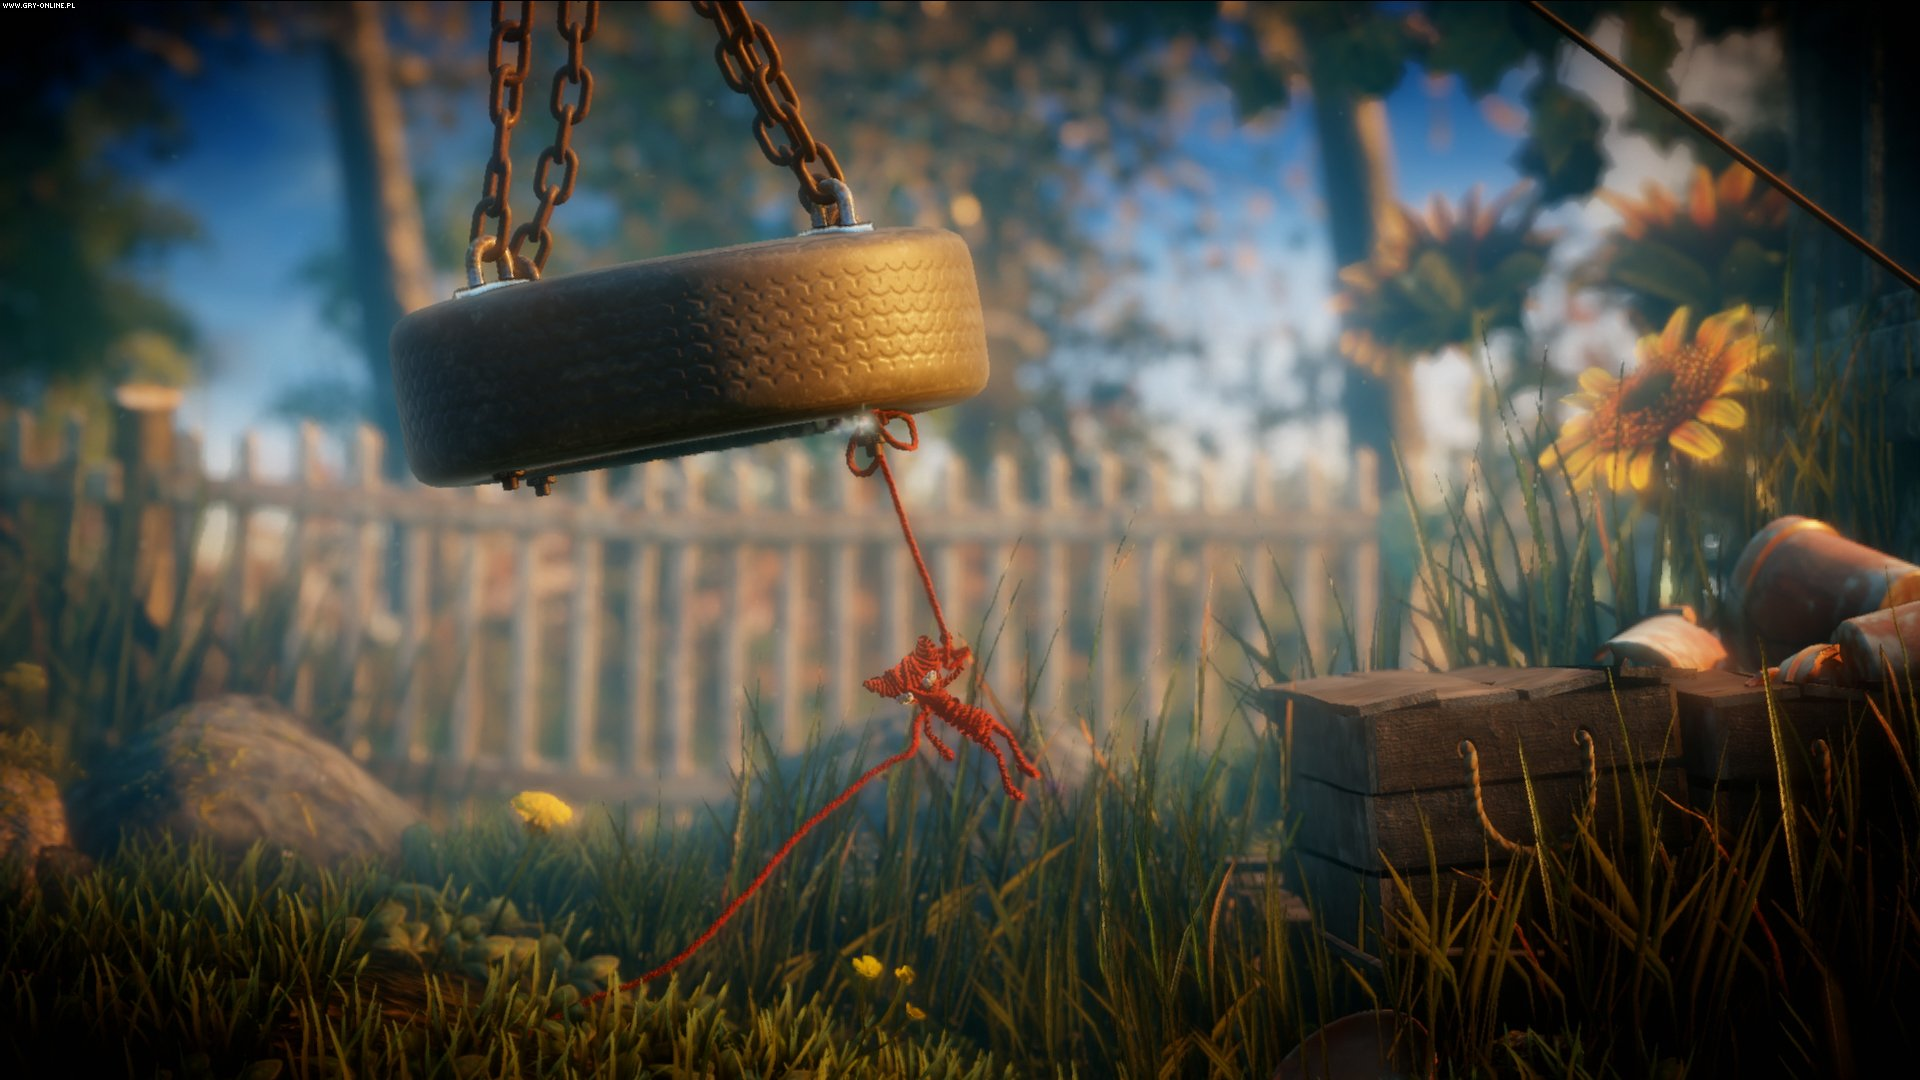 Unravel PC, XONE, PS4 Games Image 37/37, Coldwood Interactive AB, Electronic Arts Inc.